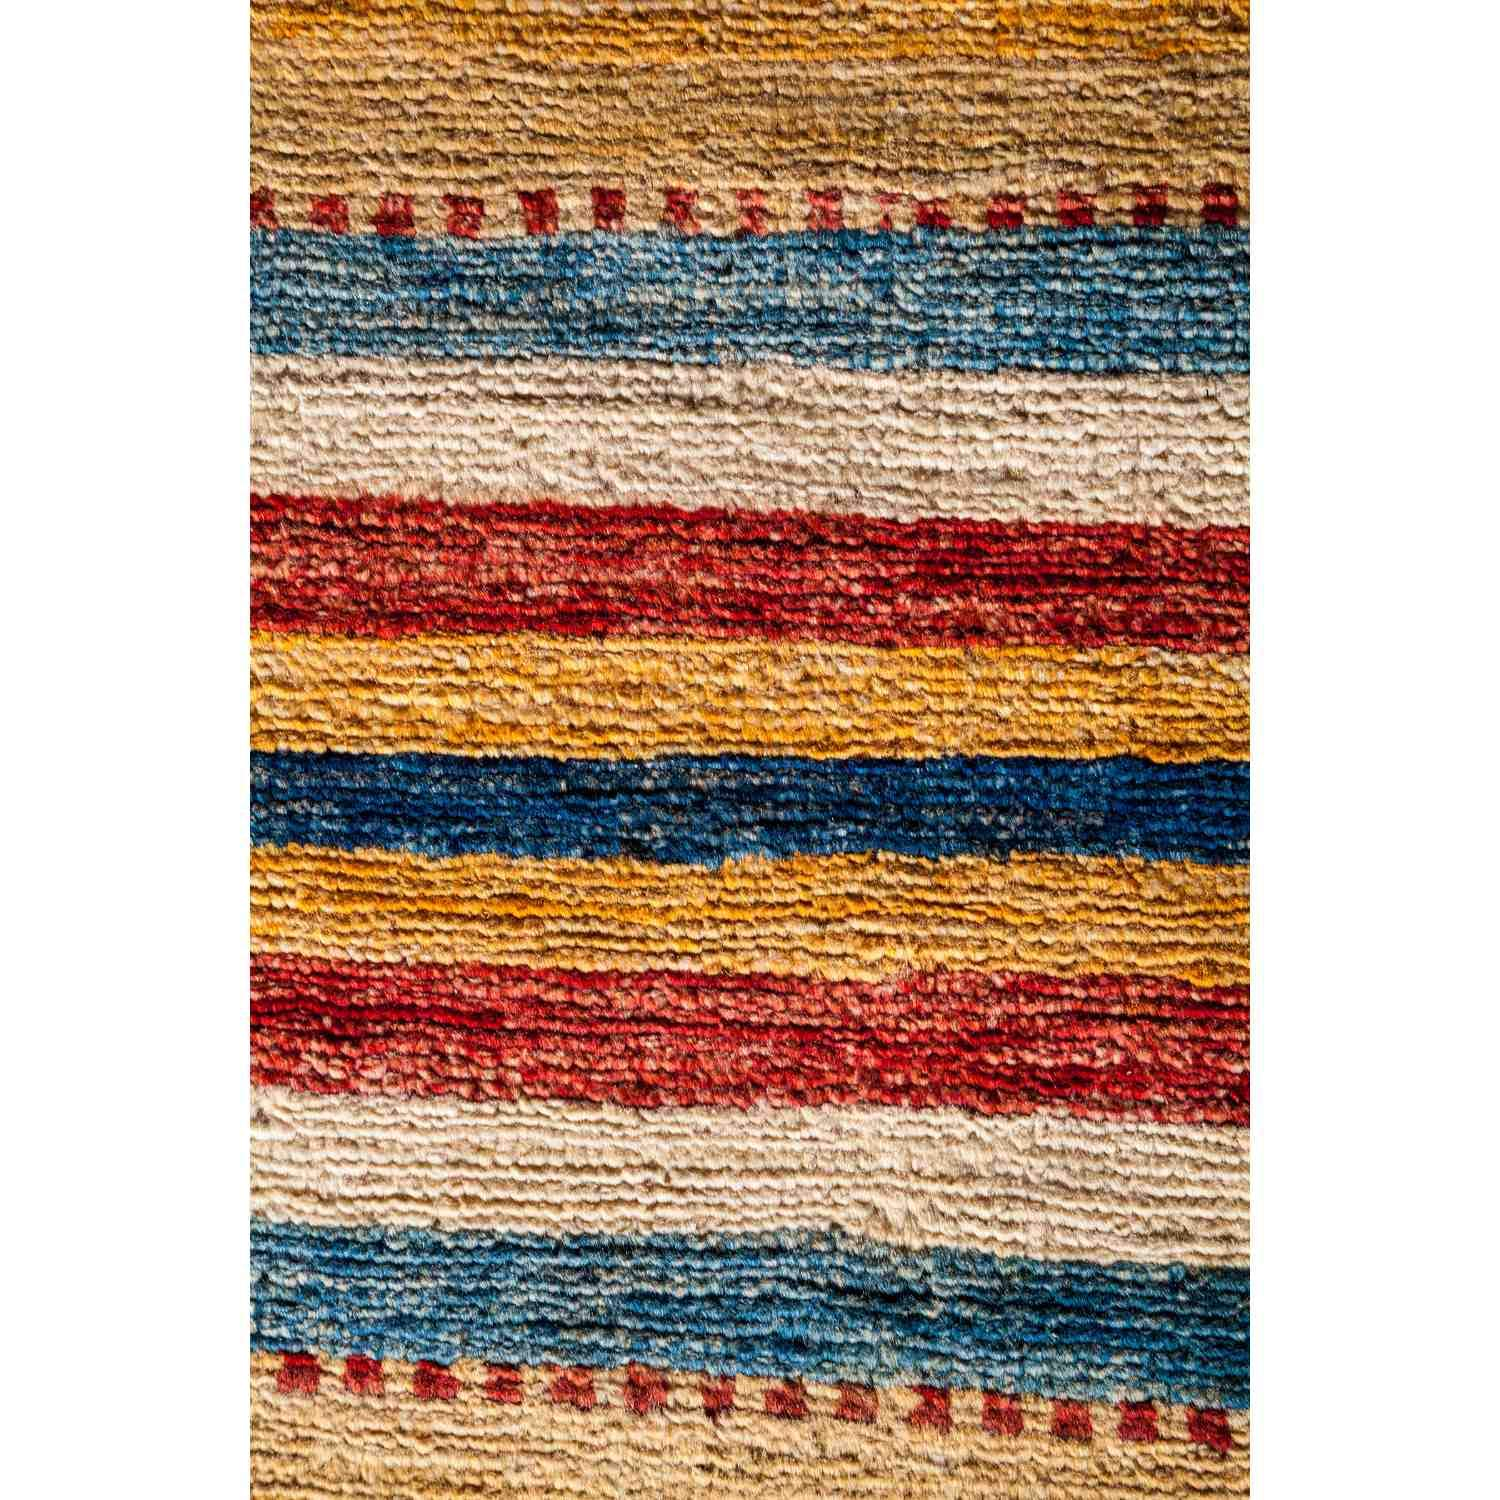 5 10 x 8 3 Caramel Solo Rugs Tribal Hand Knotted Area Rug